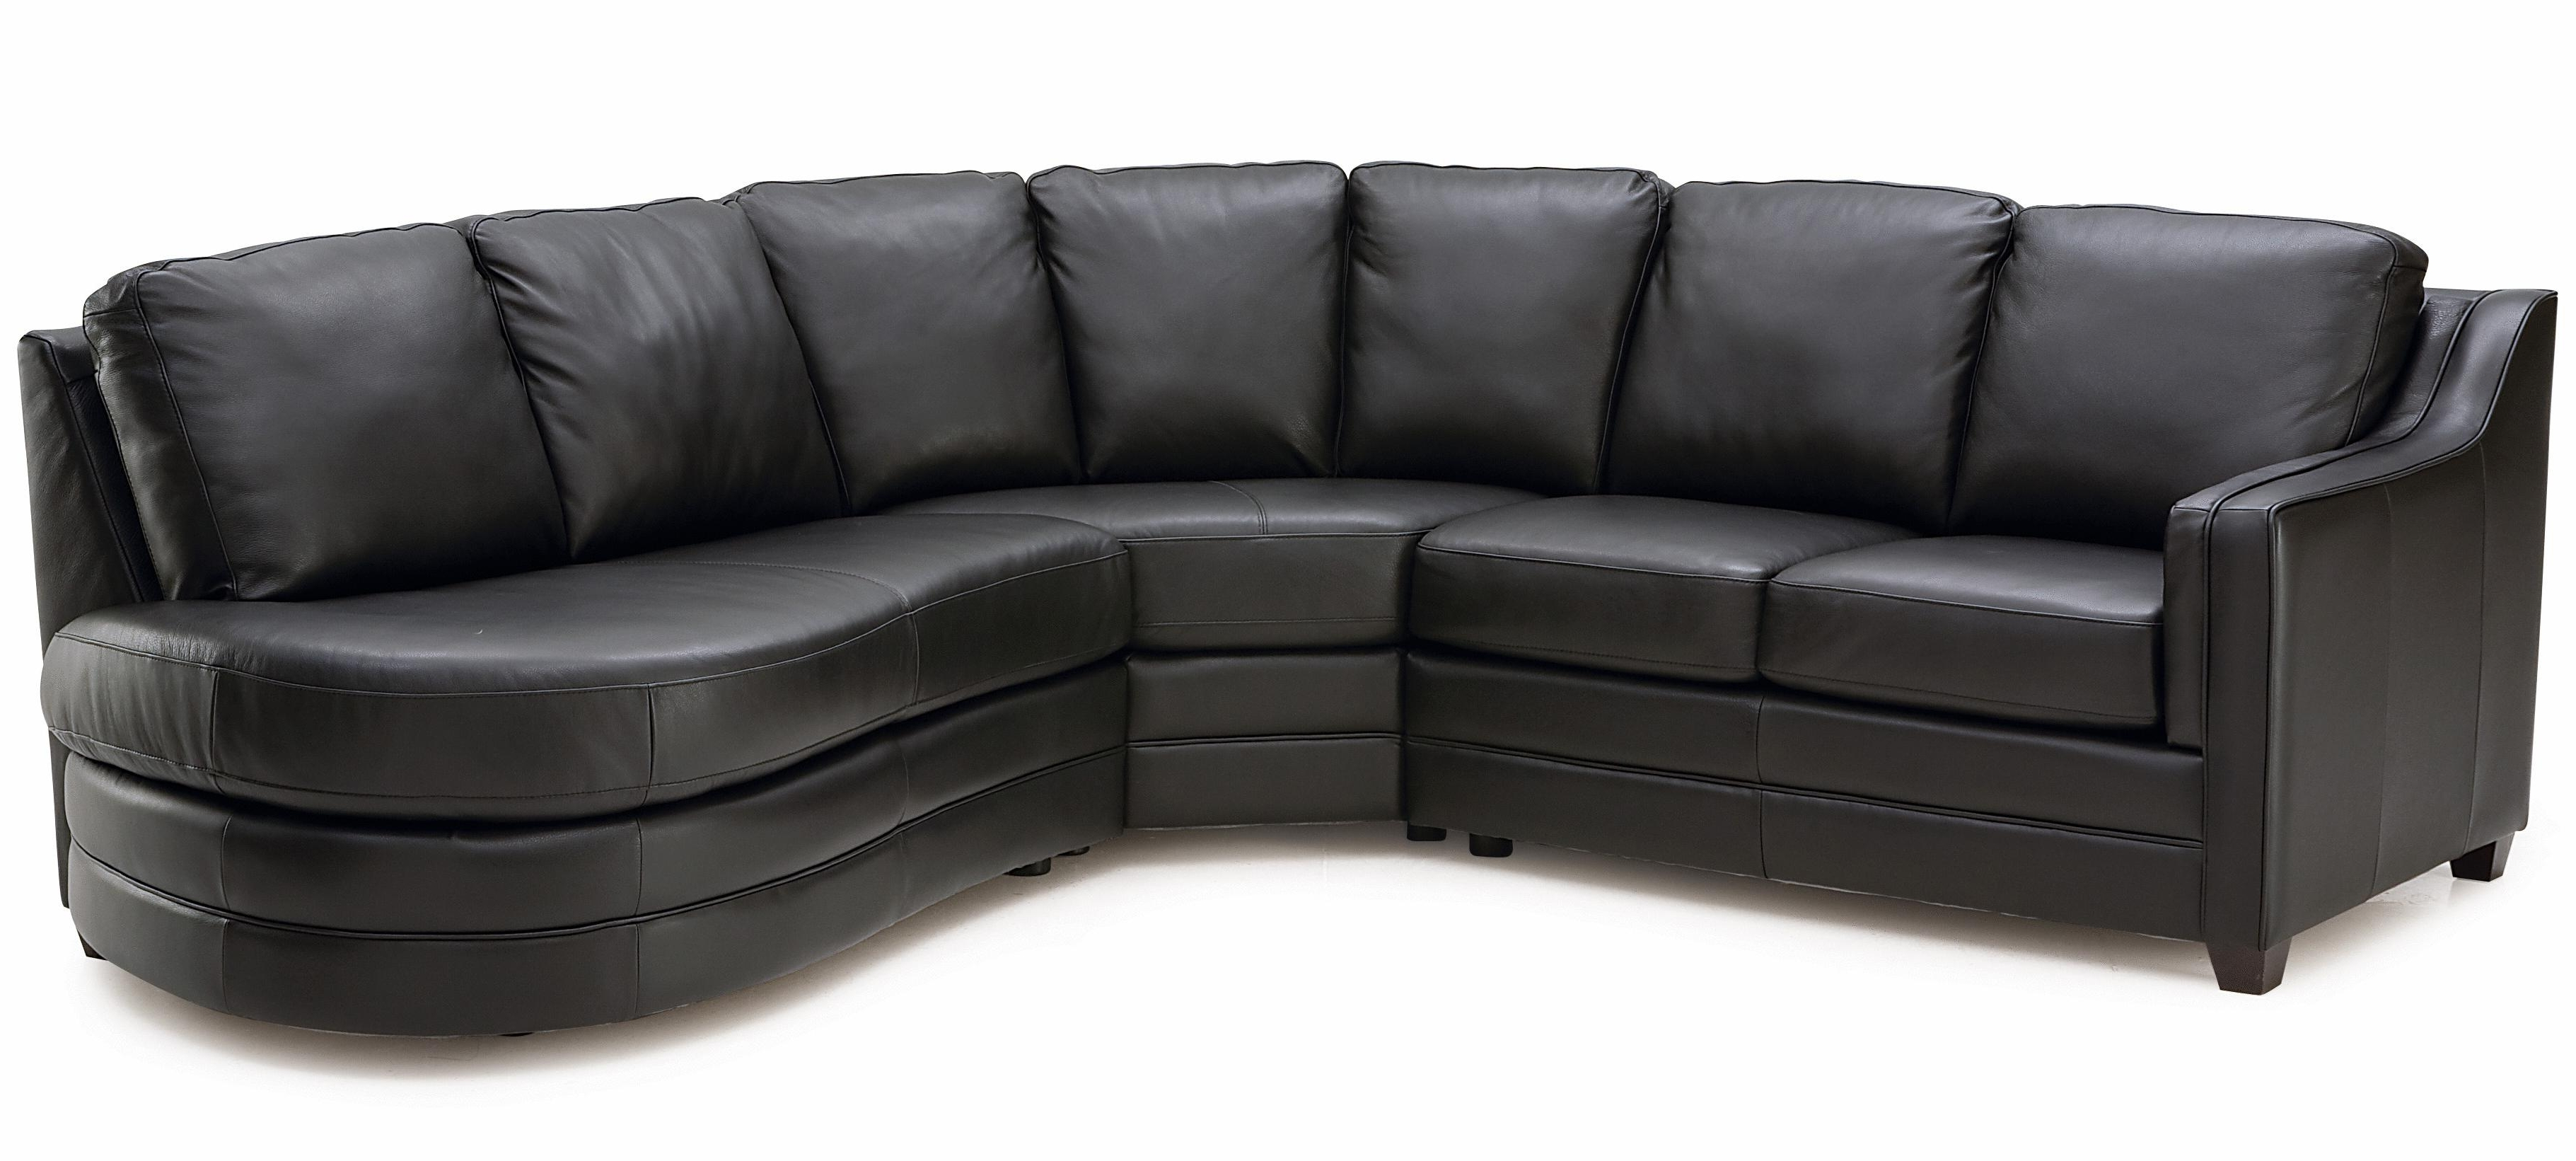 Fashionable Sectional Sofas At Buffalo Ny In Palliser Corissa Contemporary Sectional Sofa – Ahfa – Sofa (View 7 of 20)